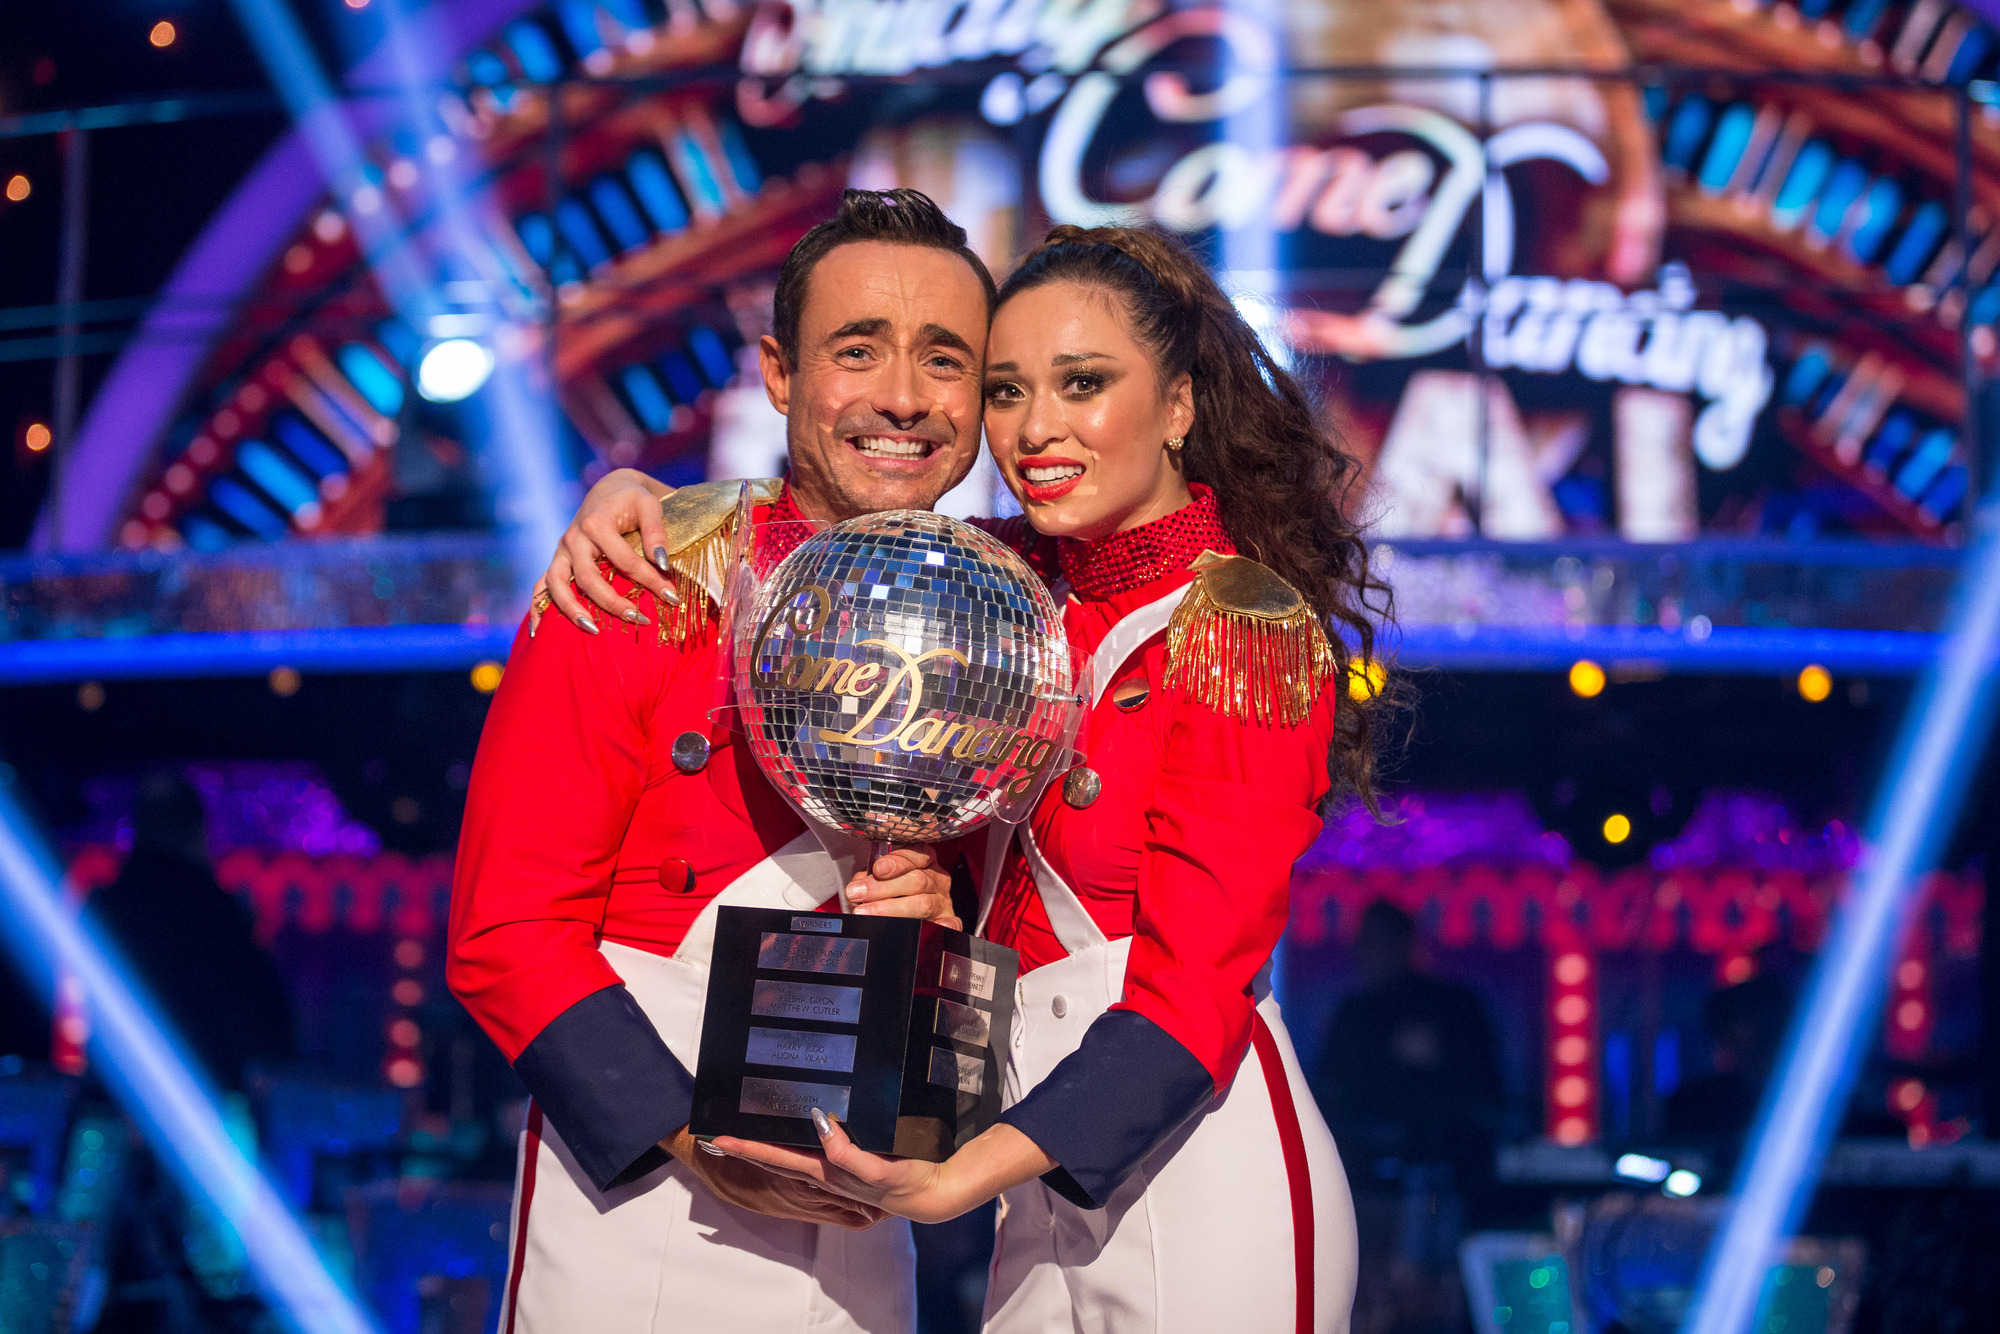 Strictly viewers call for full disclosure over final's voting 'scandal'